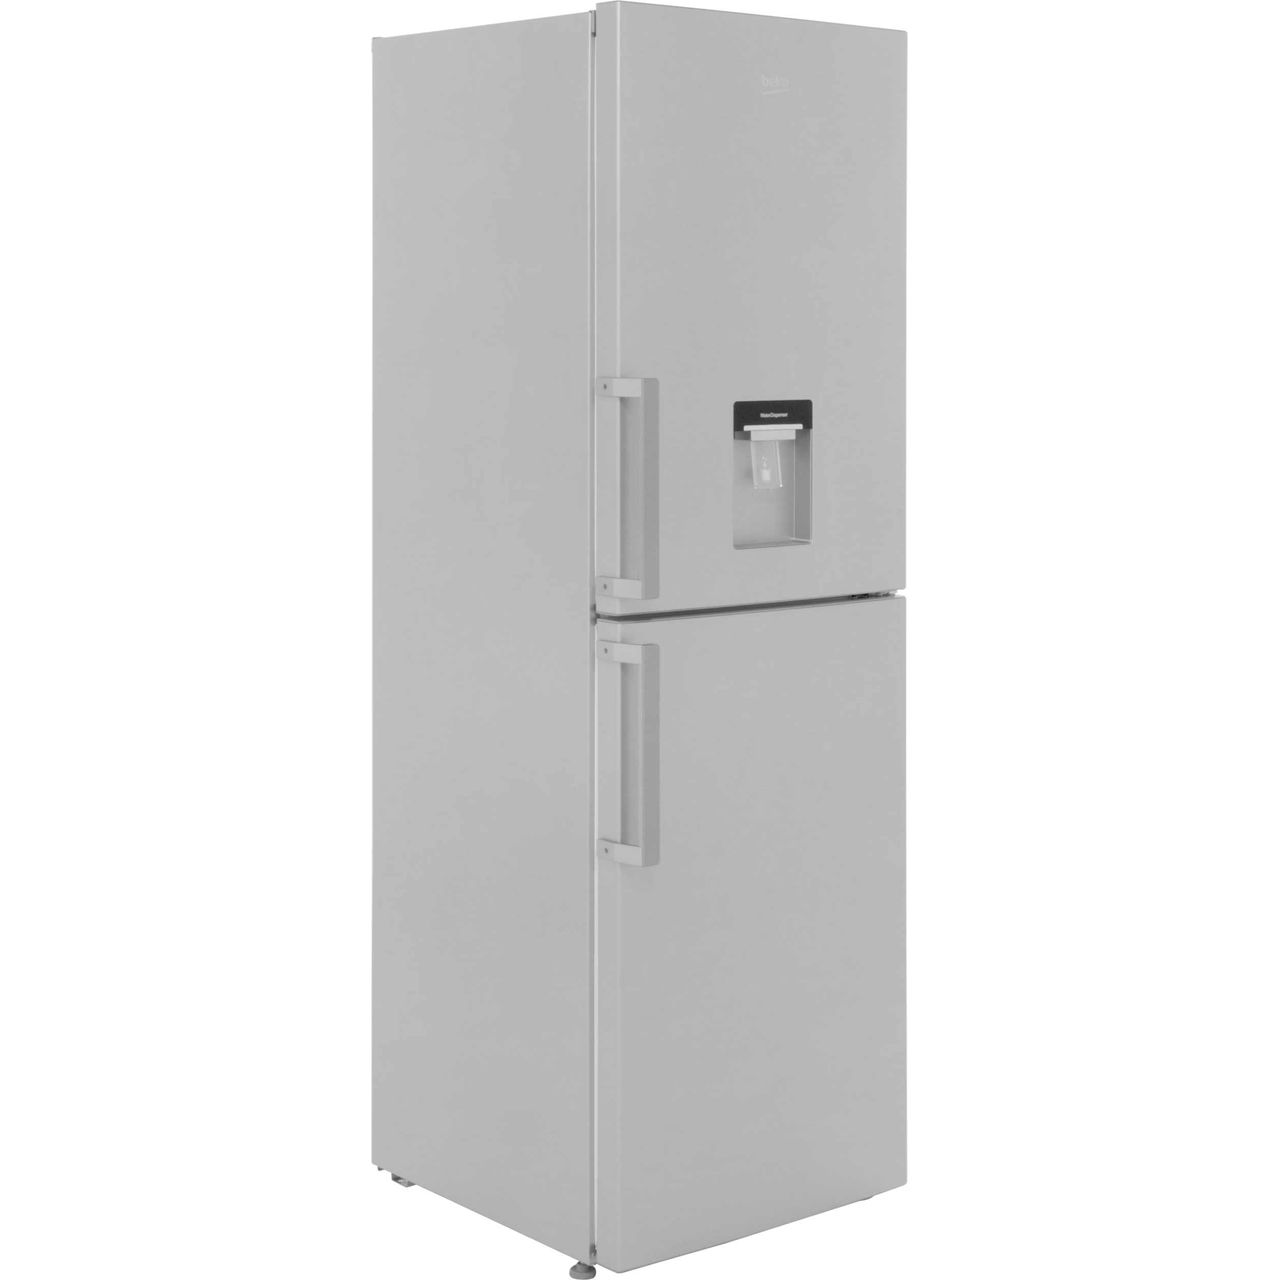 Beko CFP1691DS Free Standing Fridge Freezer Frost Free in Silver